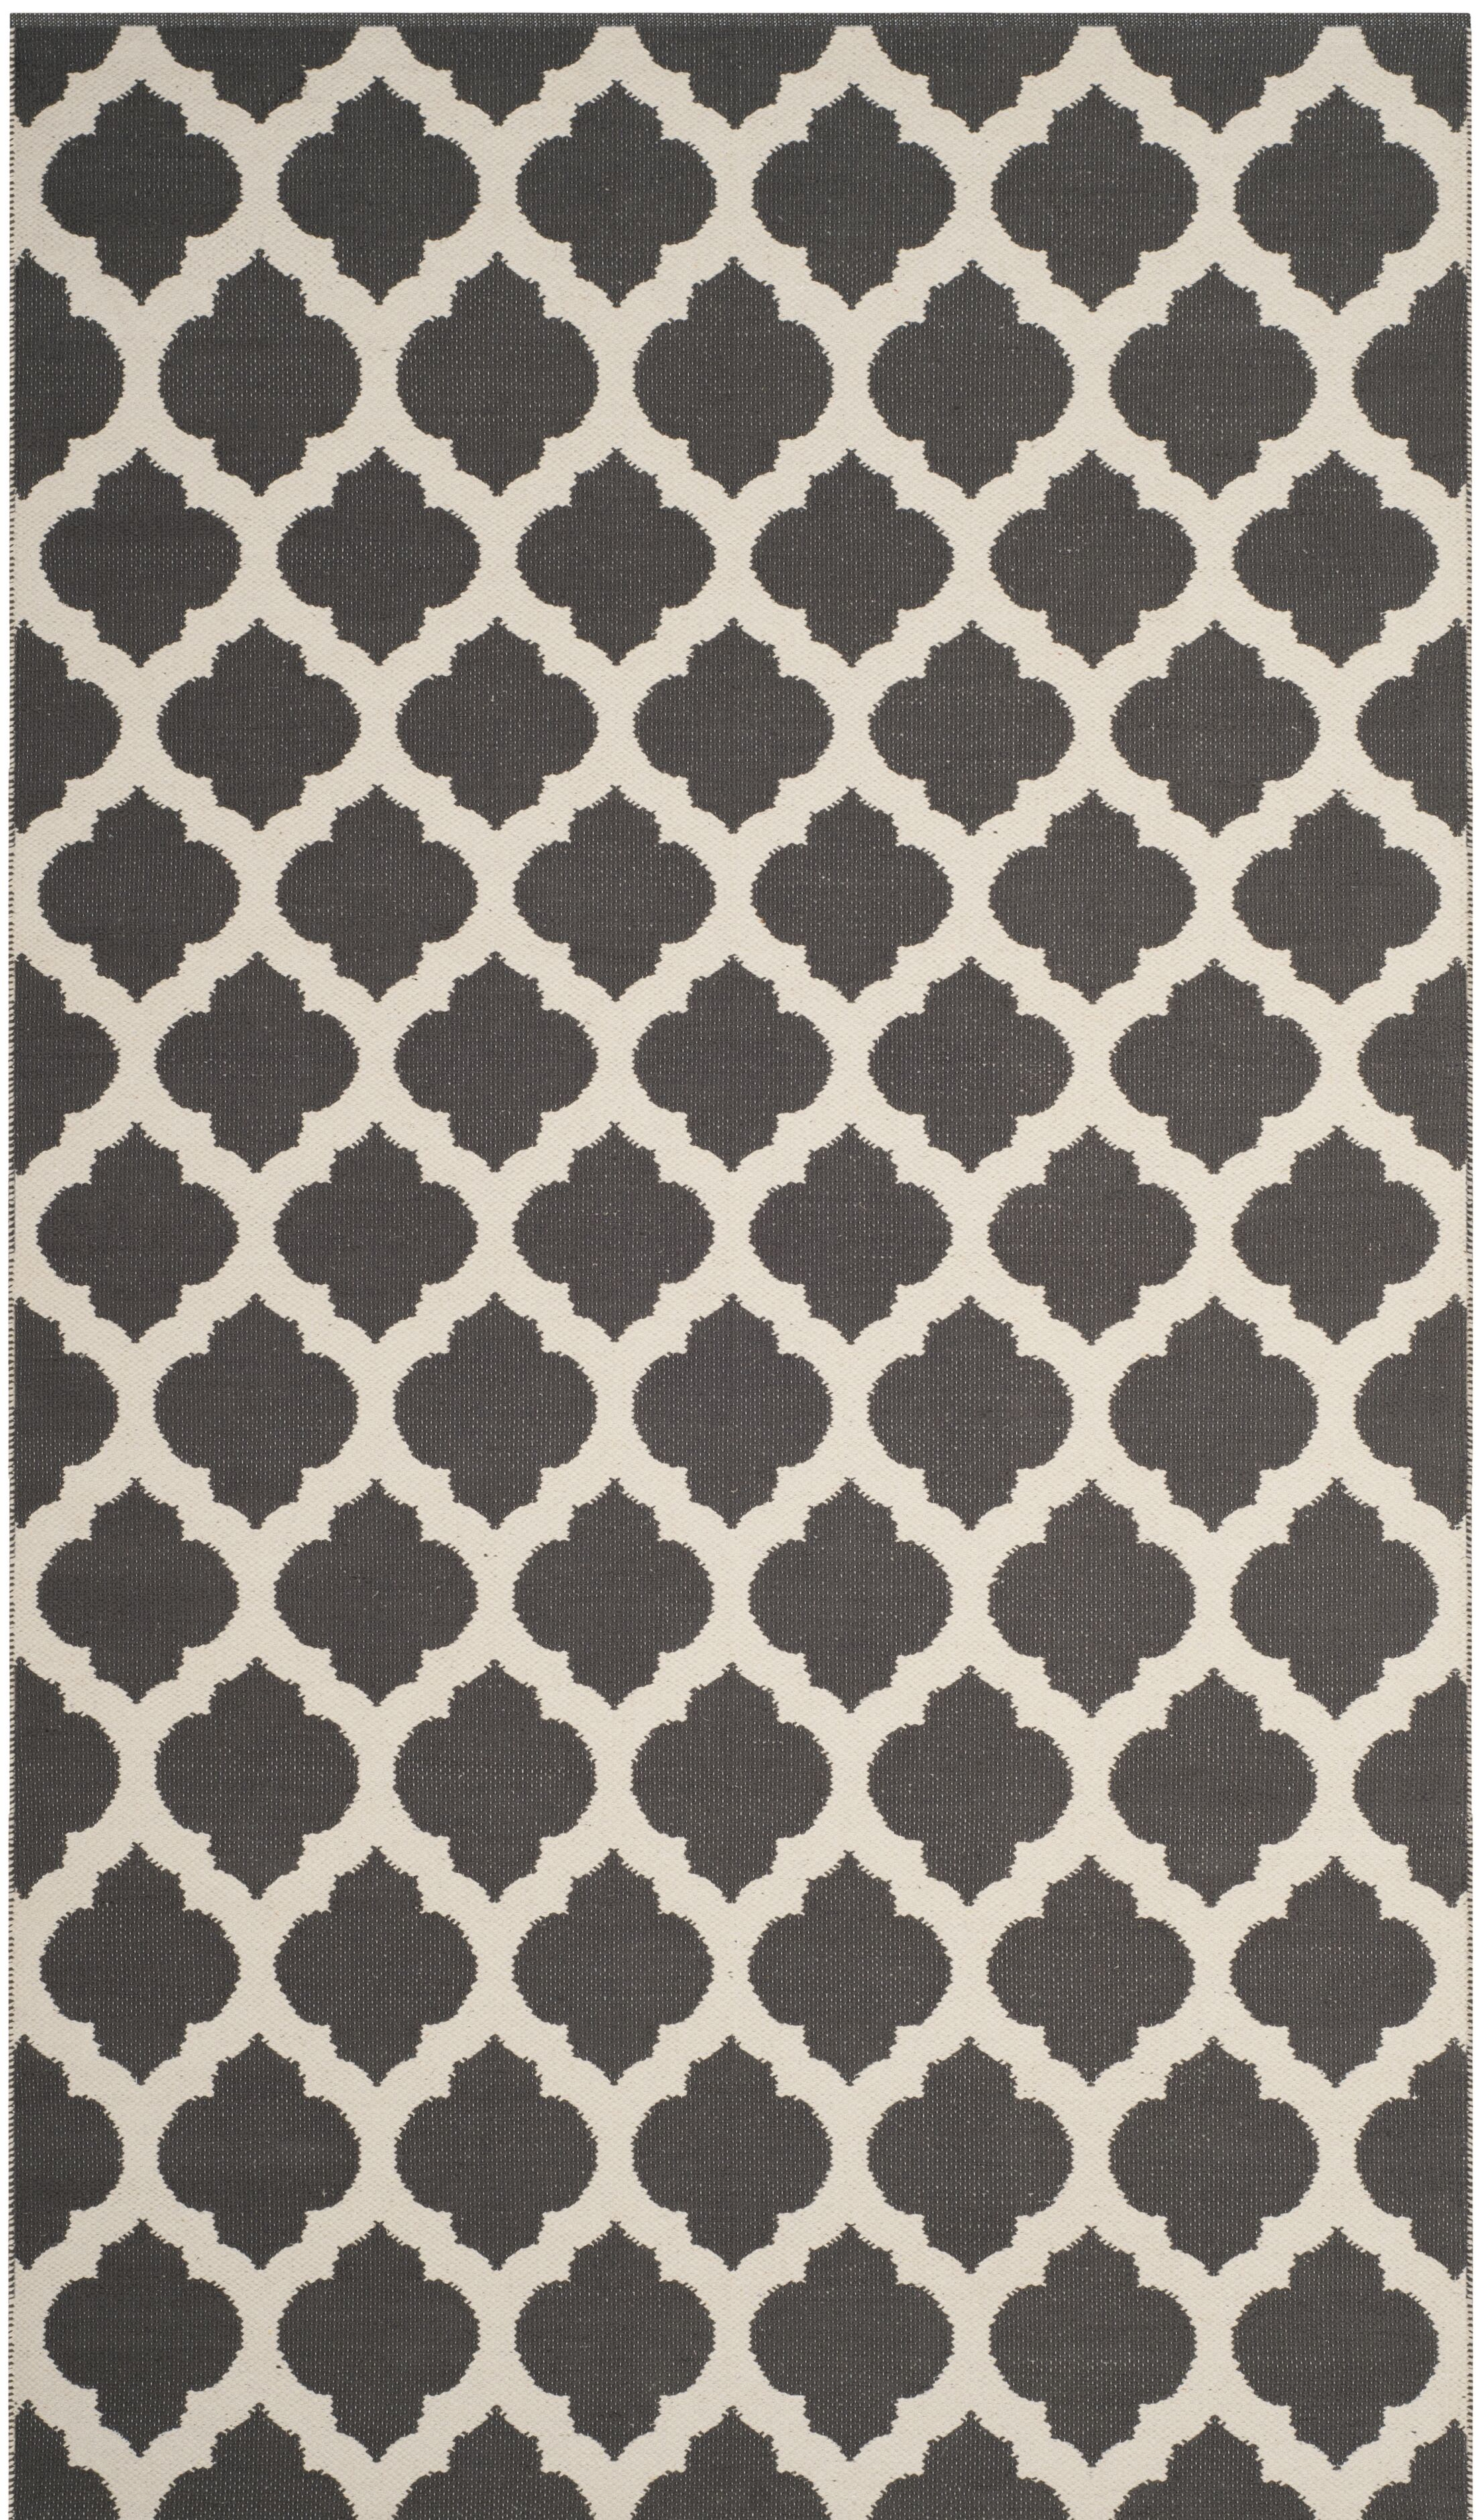 Willow Hand-Woven Dark Gray/Ivory Area Rug Rug Size: Rectangle 4' x 6'